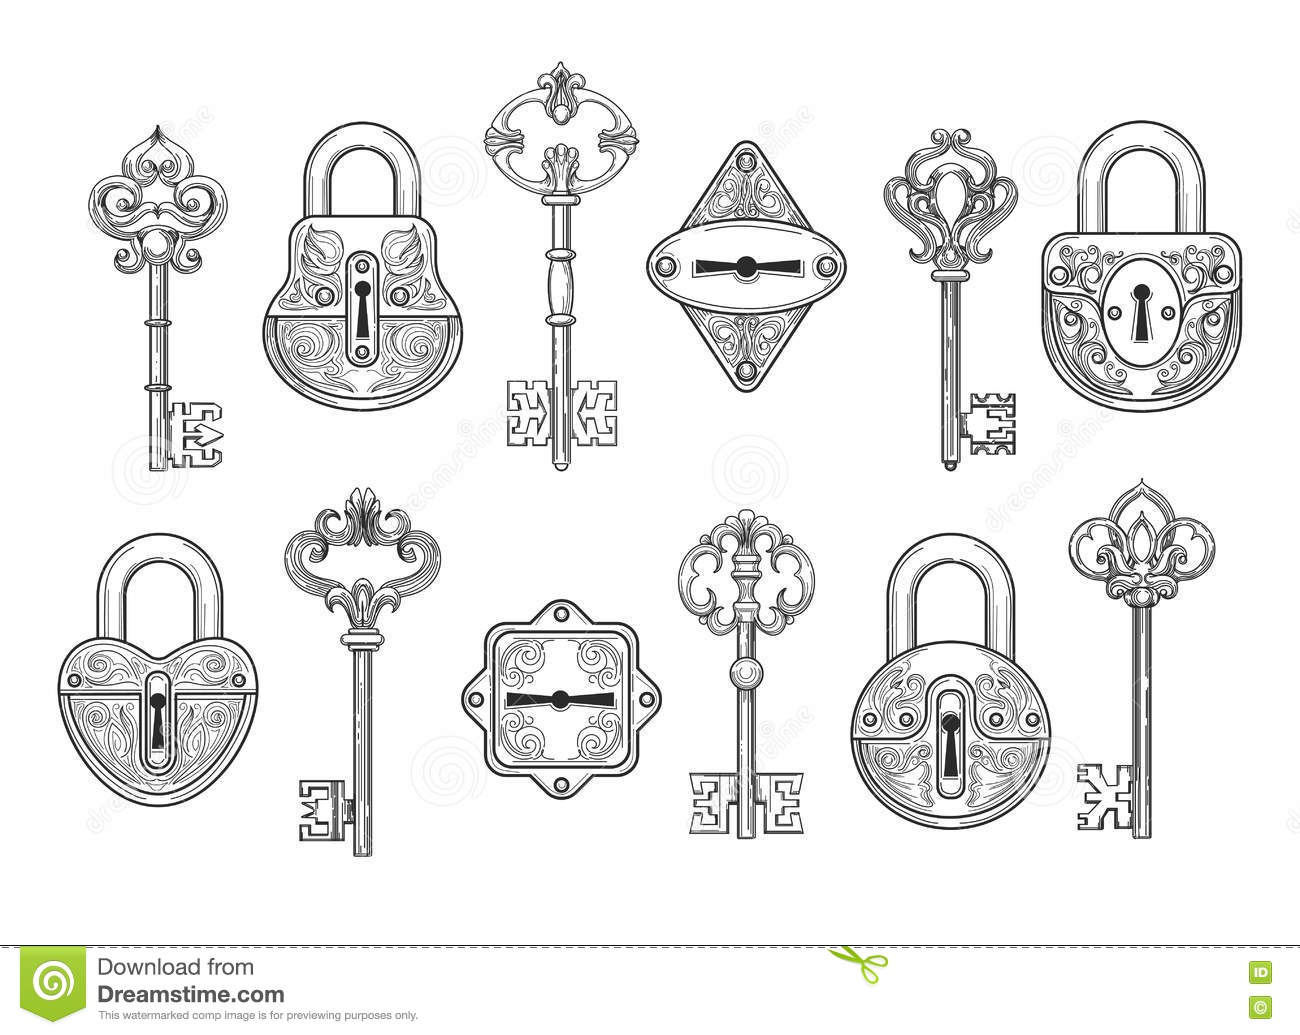 Vintage Lock Coloring Pages